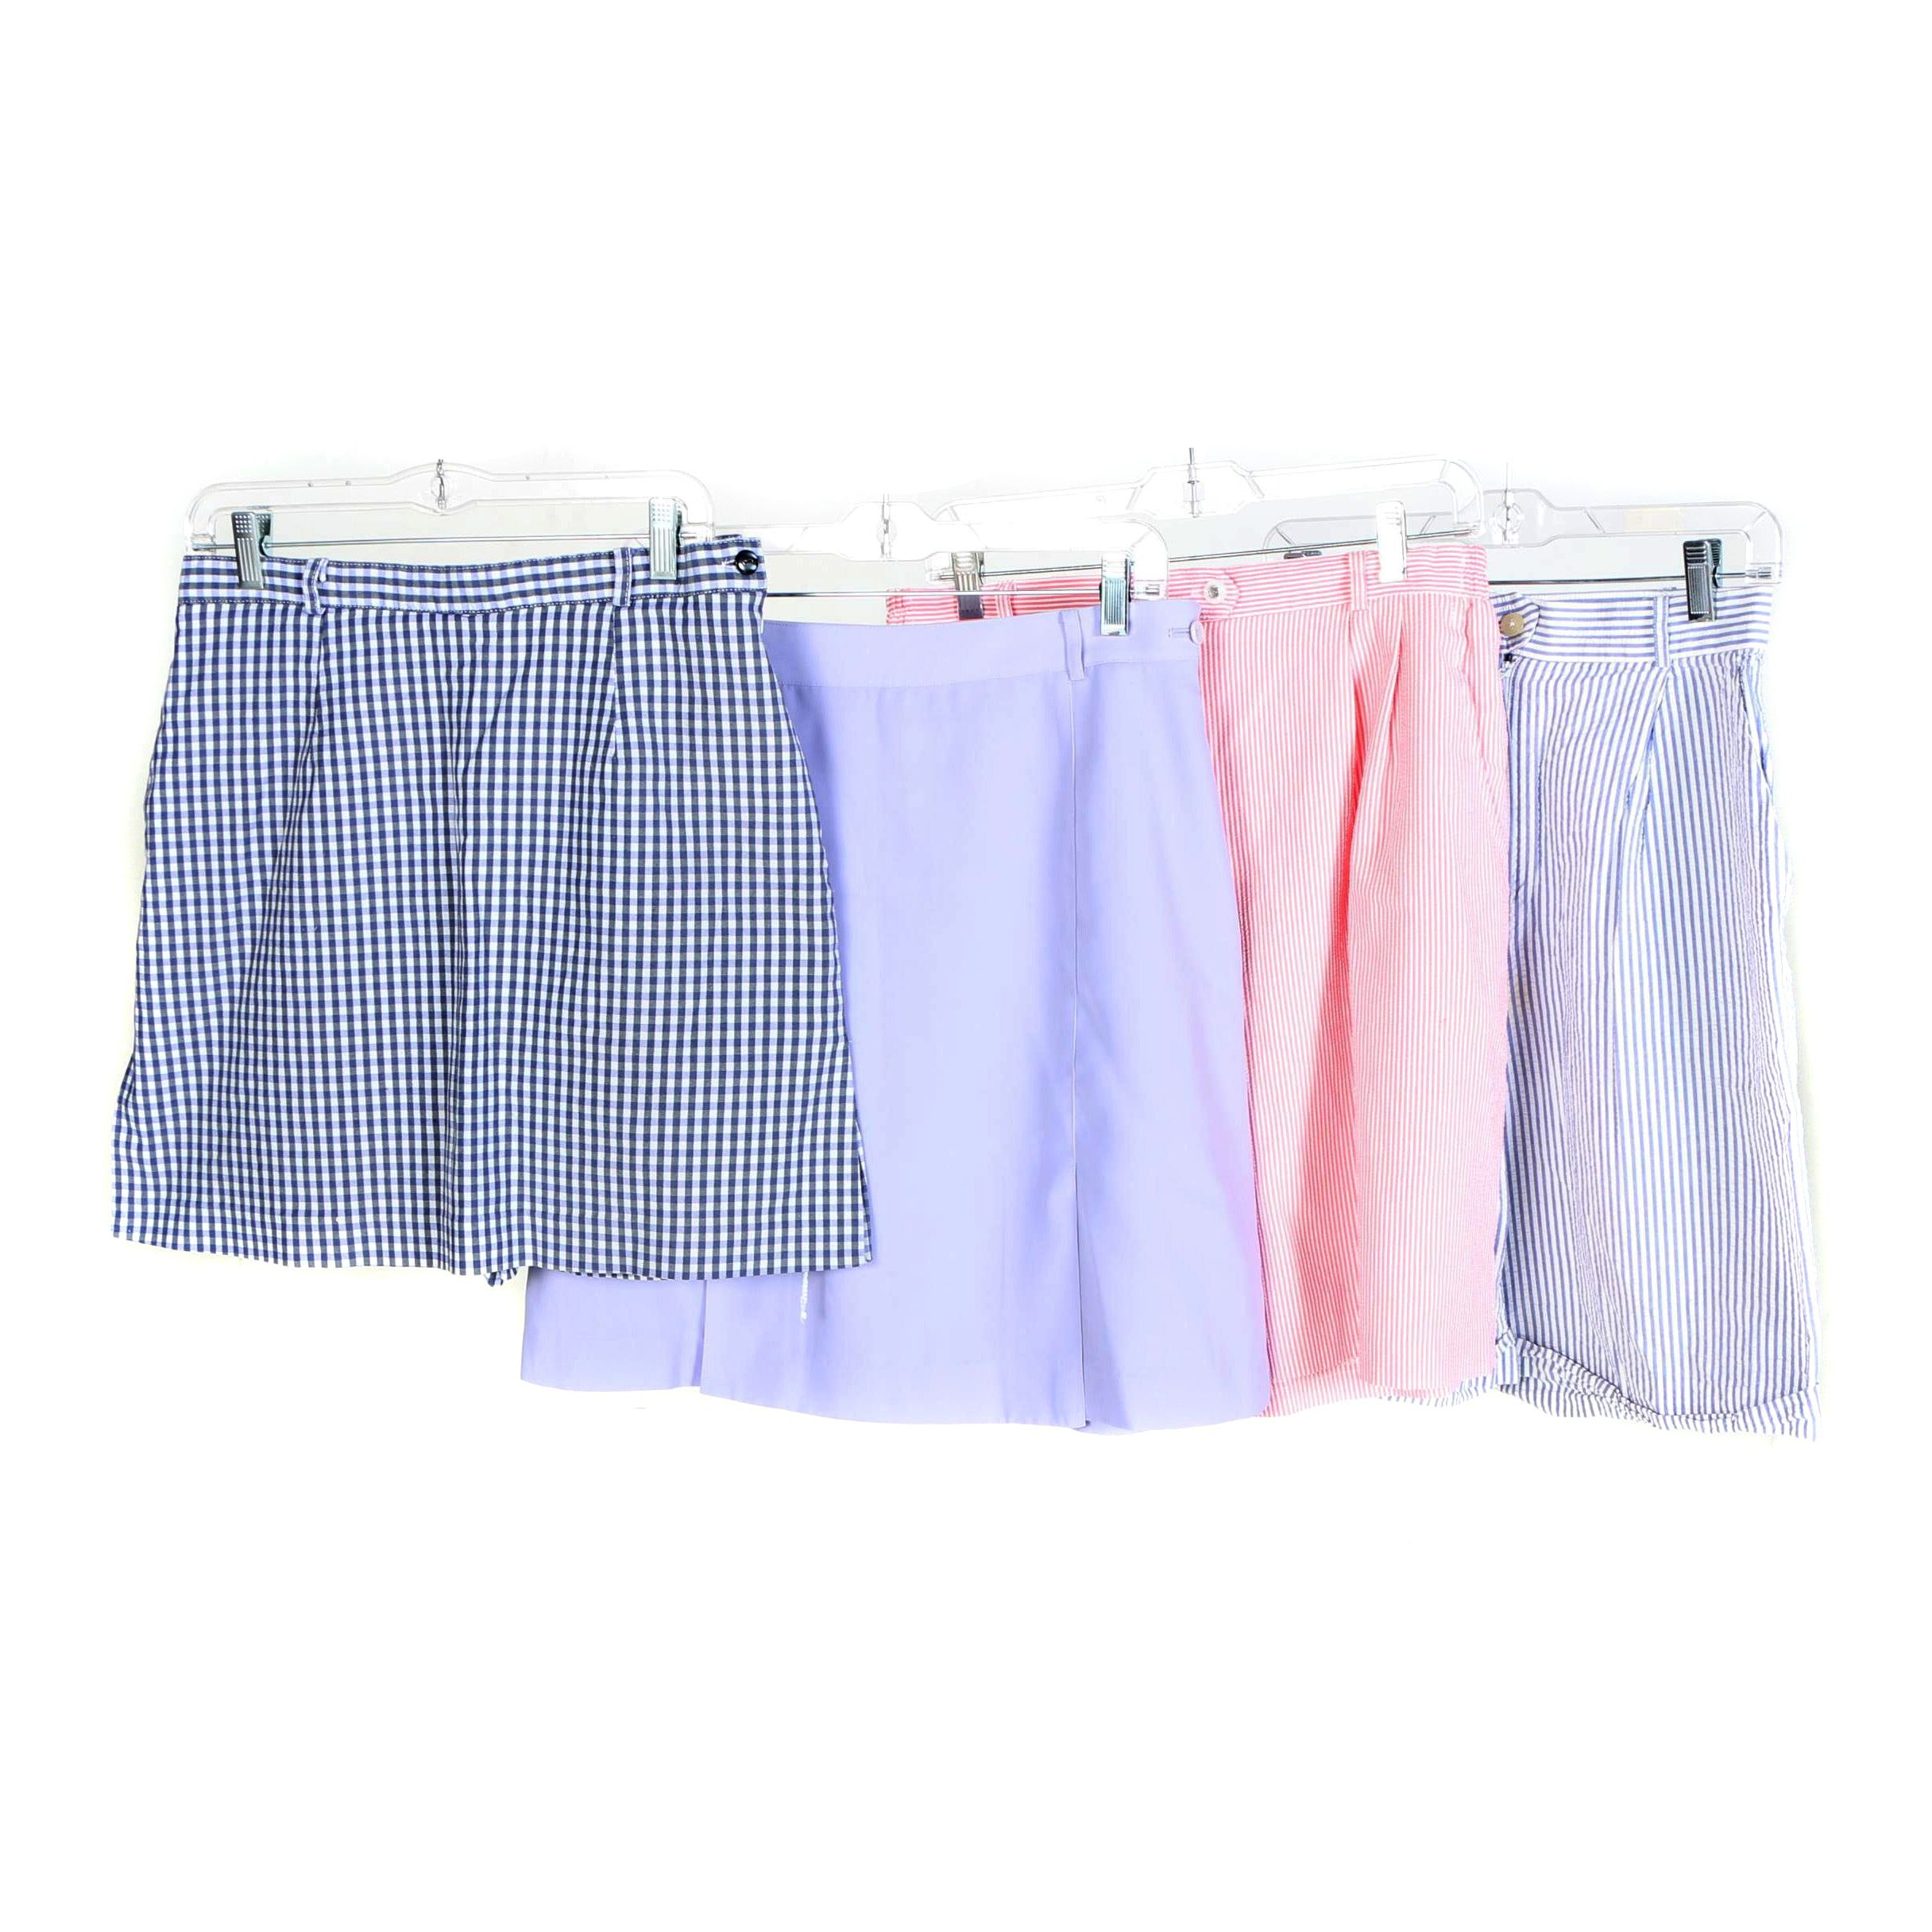 Women's Shorts, Including Astra